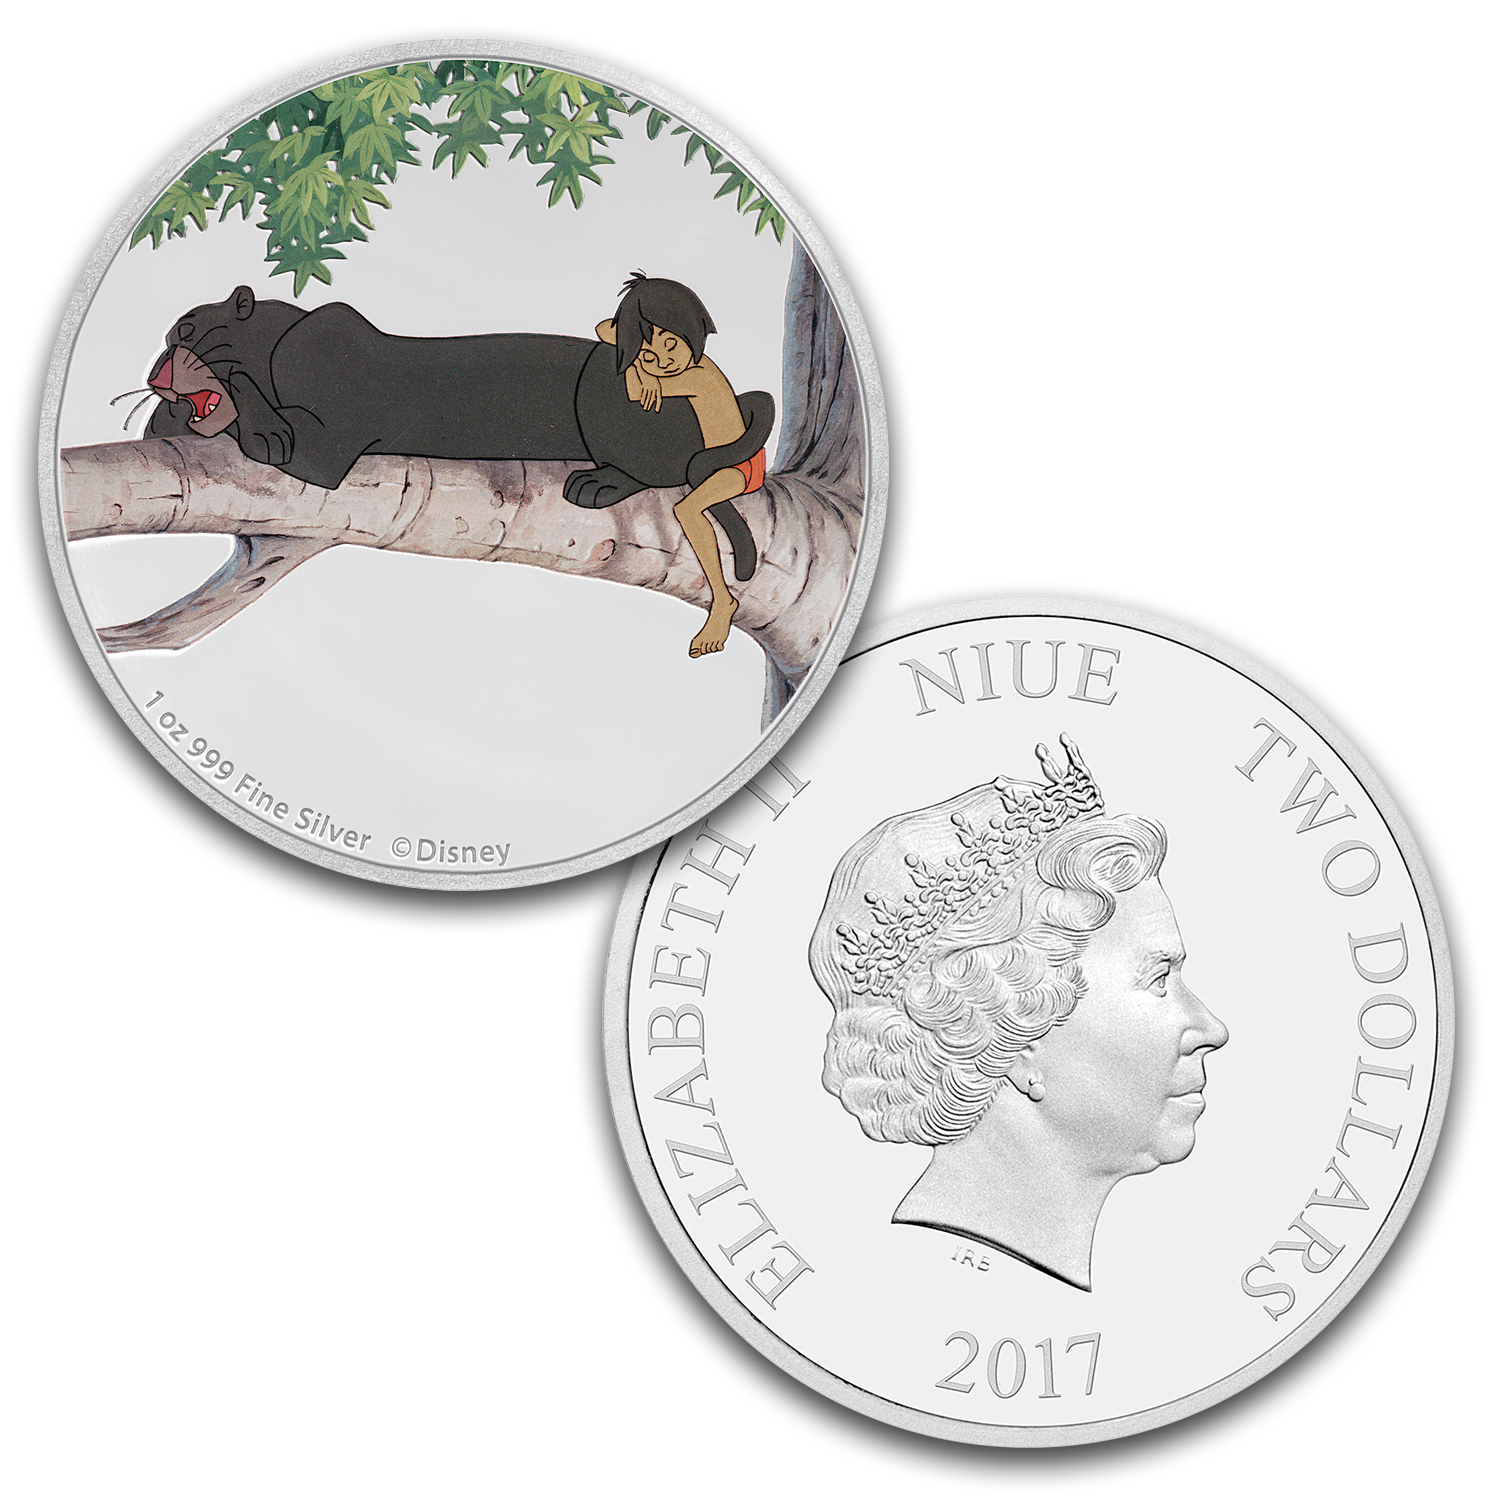 2017 Niue 4-Coin 1 oz Silver $2 Disney The Jungle Book 50th Anniv